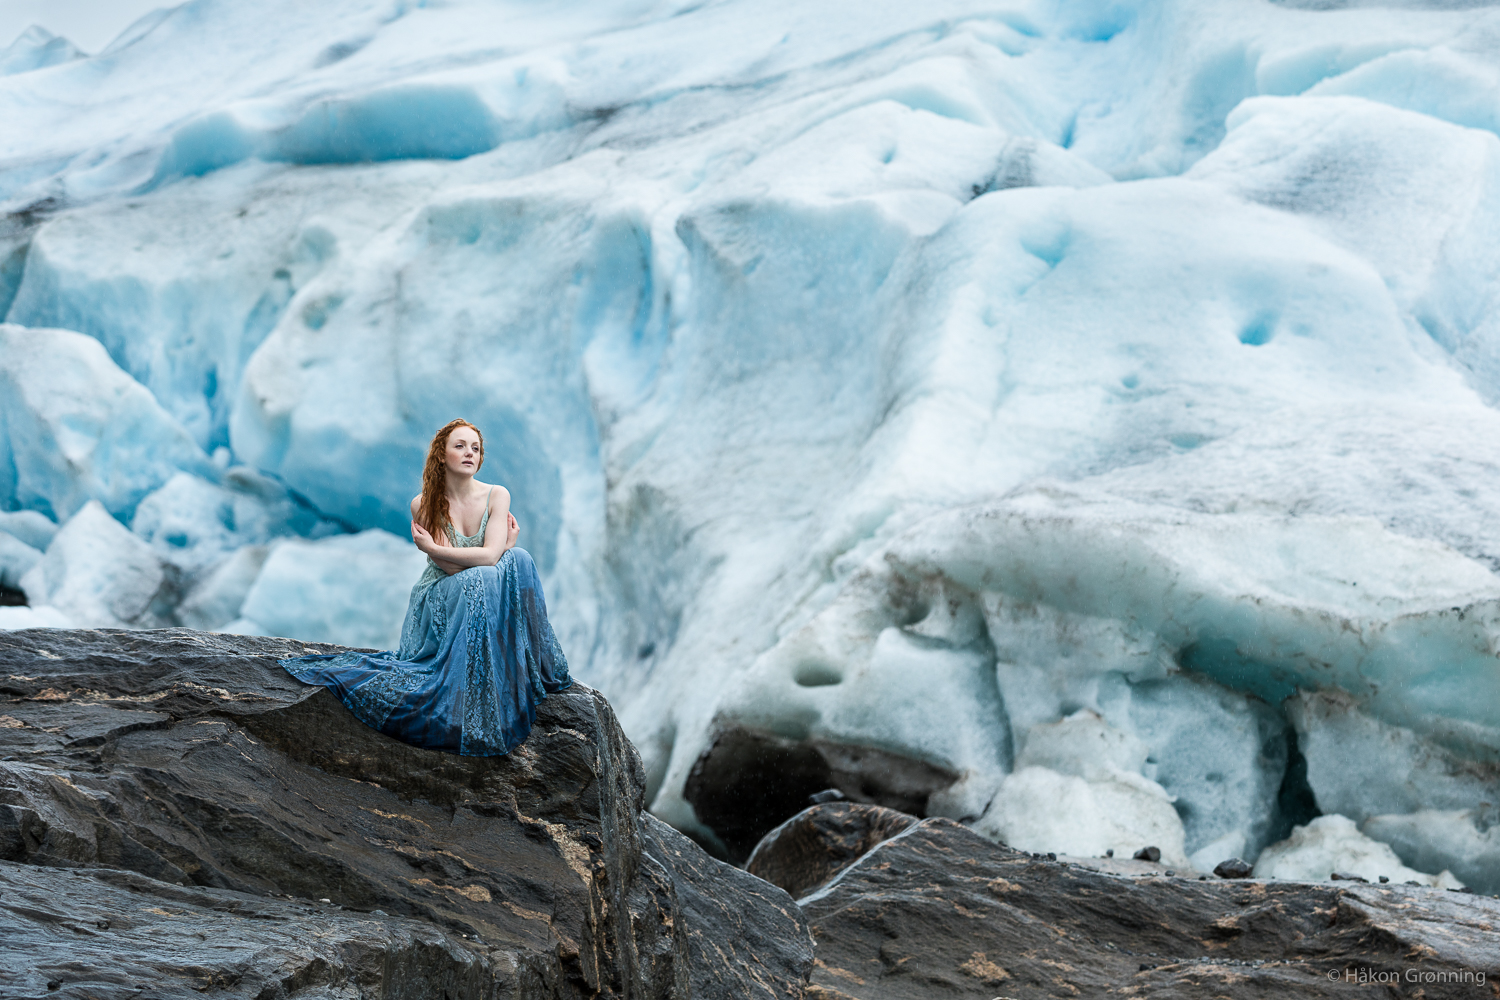 Princess of the glacier (Foto: Håkon Grønning)